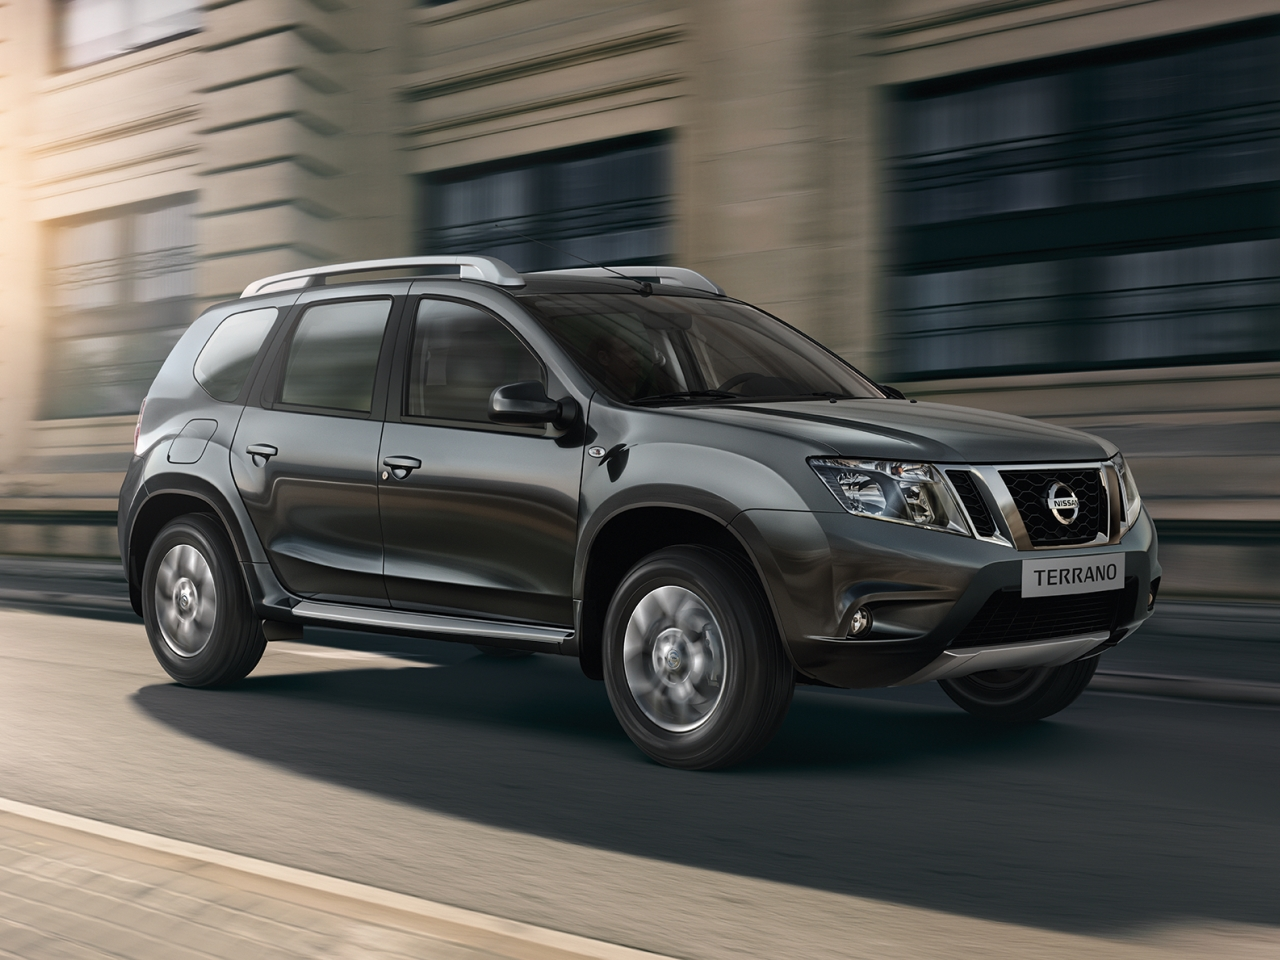 New Nissan Terrano Suv Goes On Sale In Russia